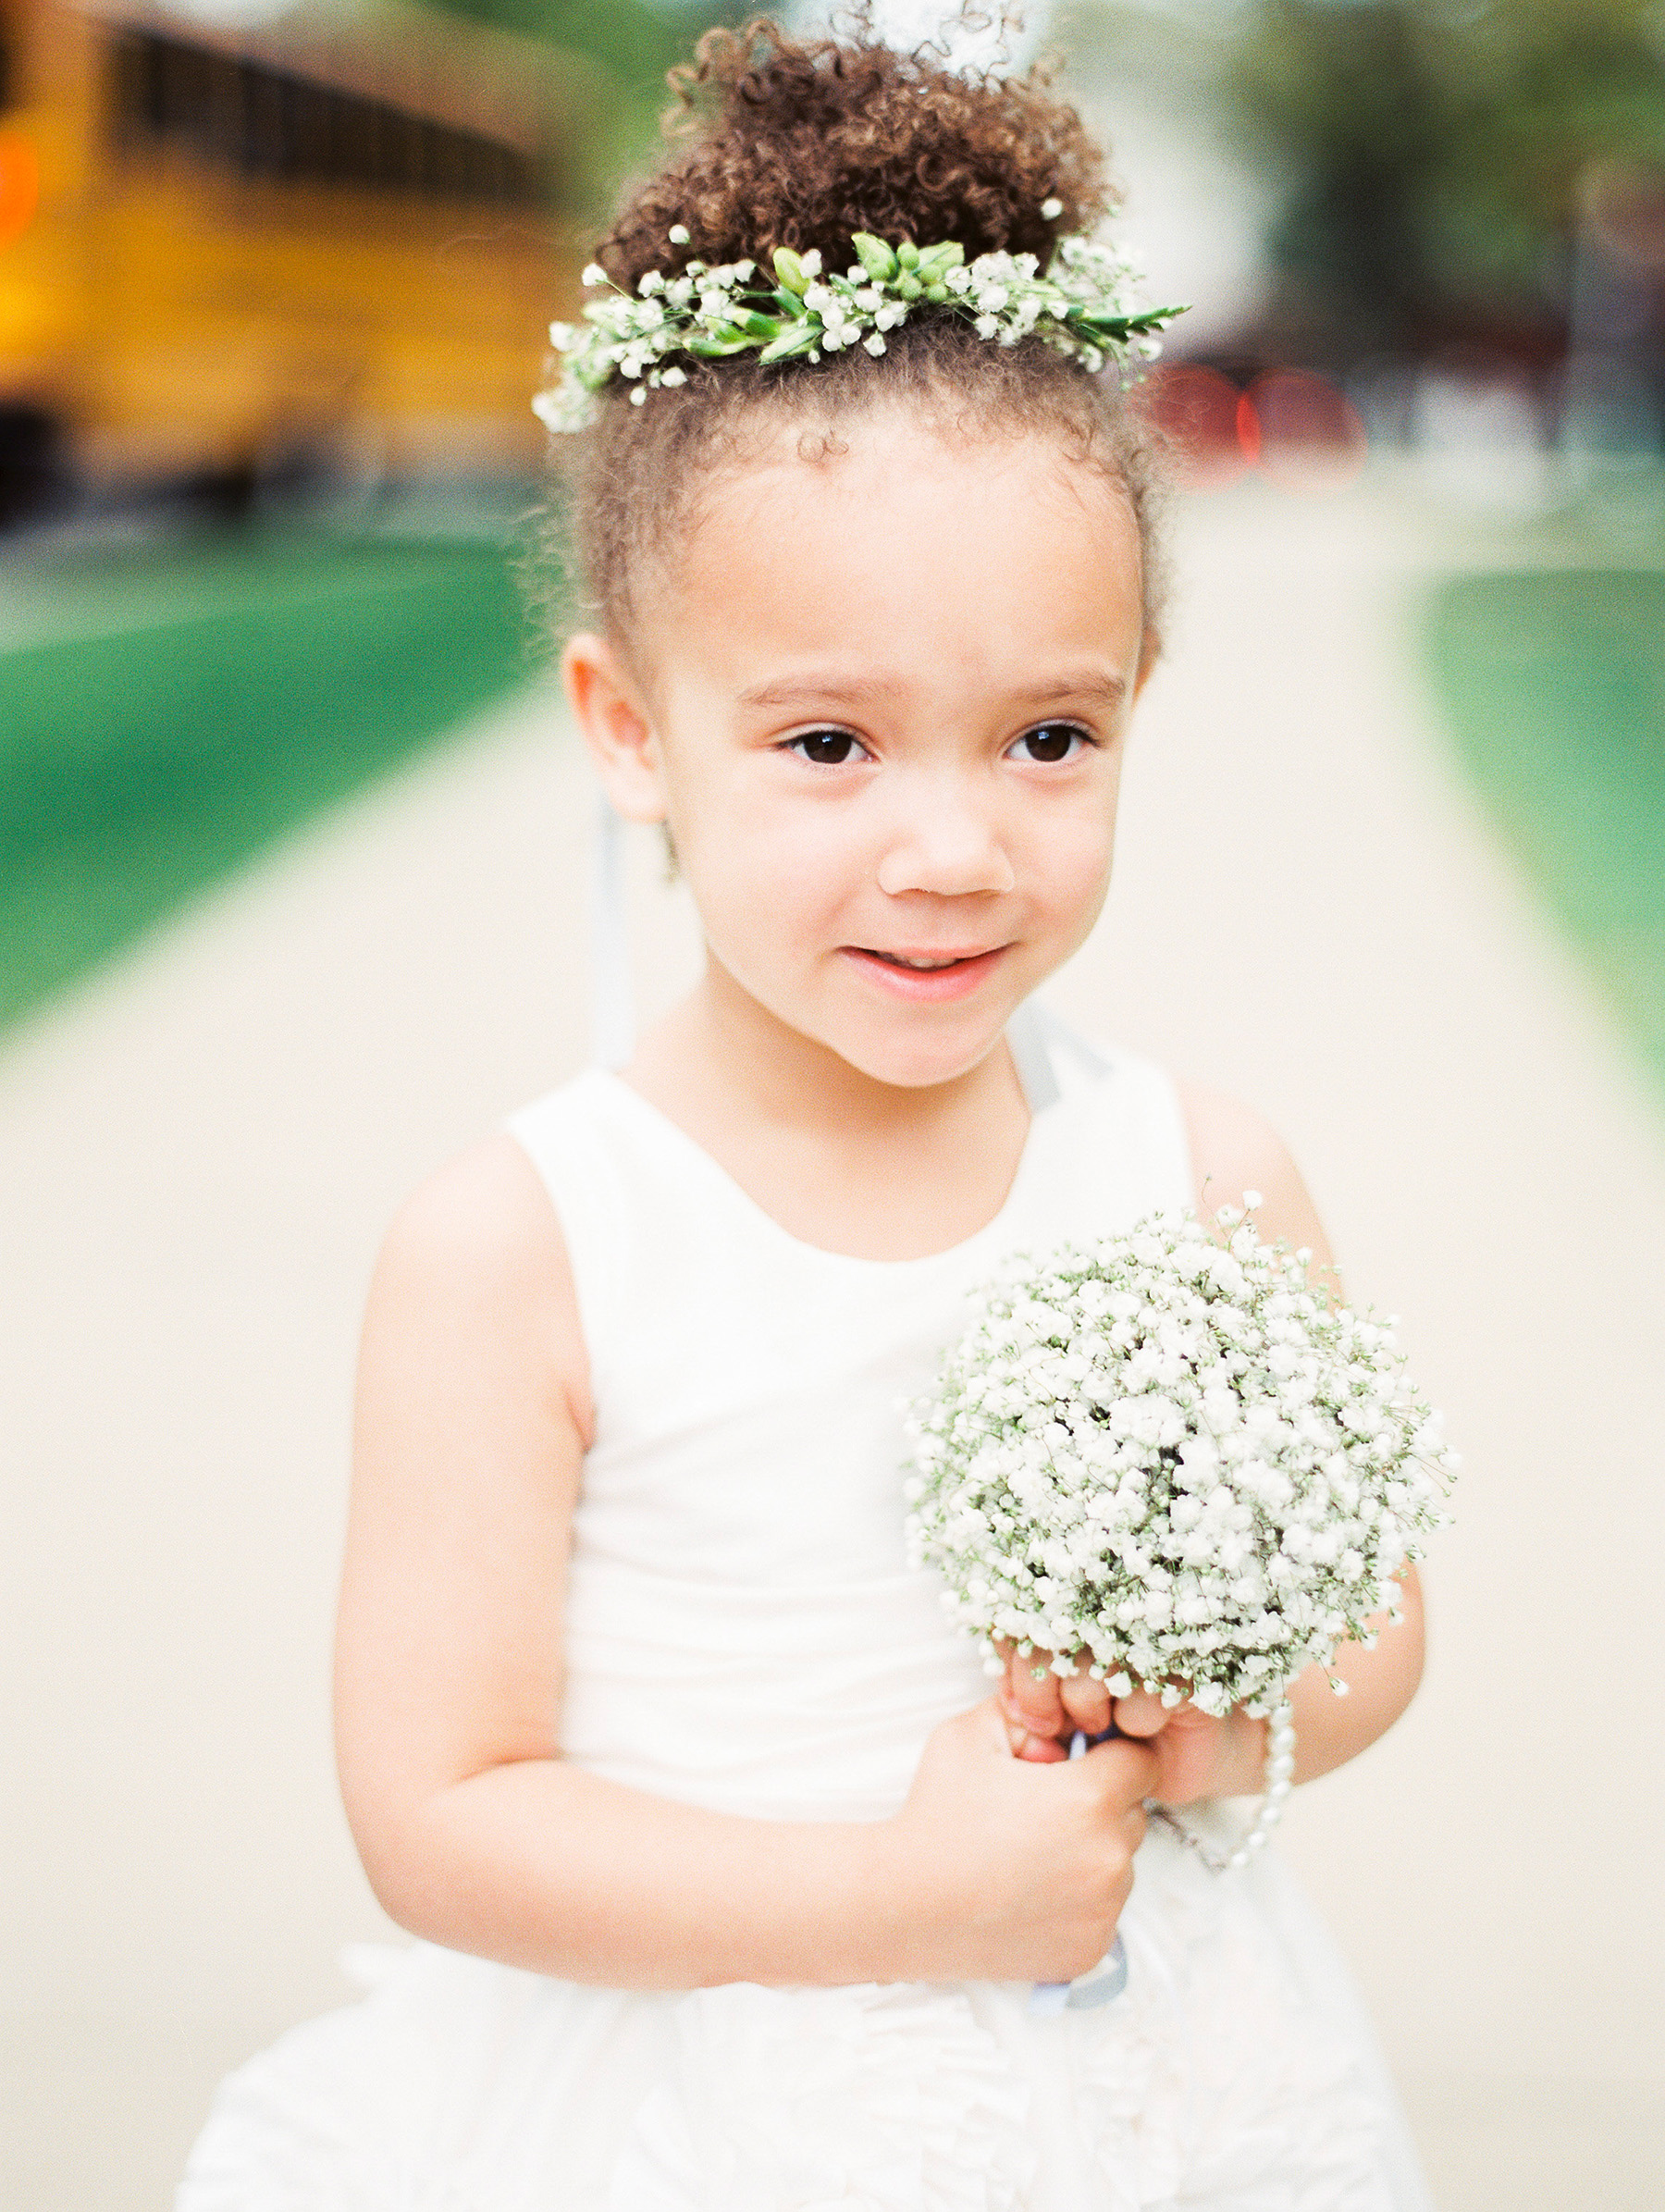 Hair Accessories Your Flower Girl Will Love